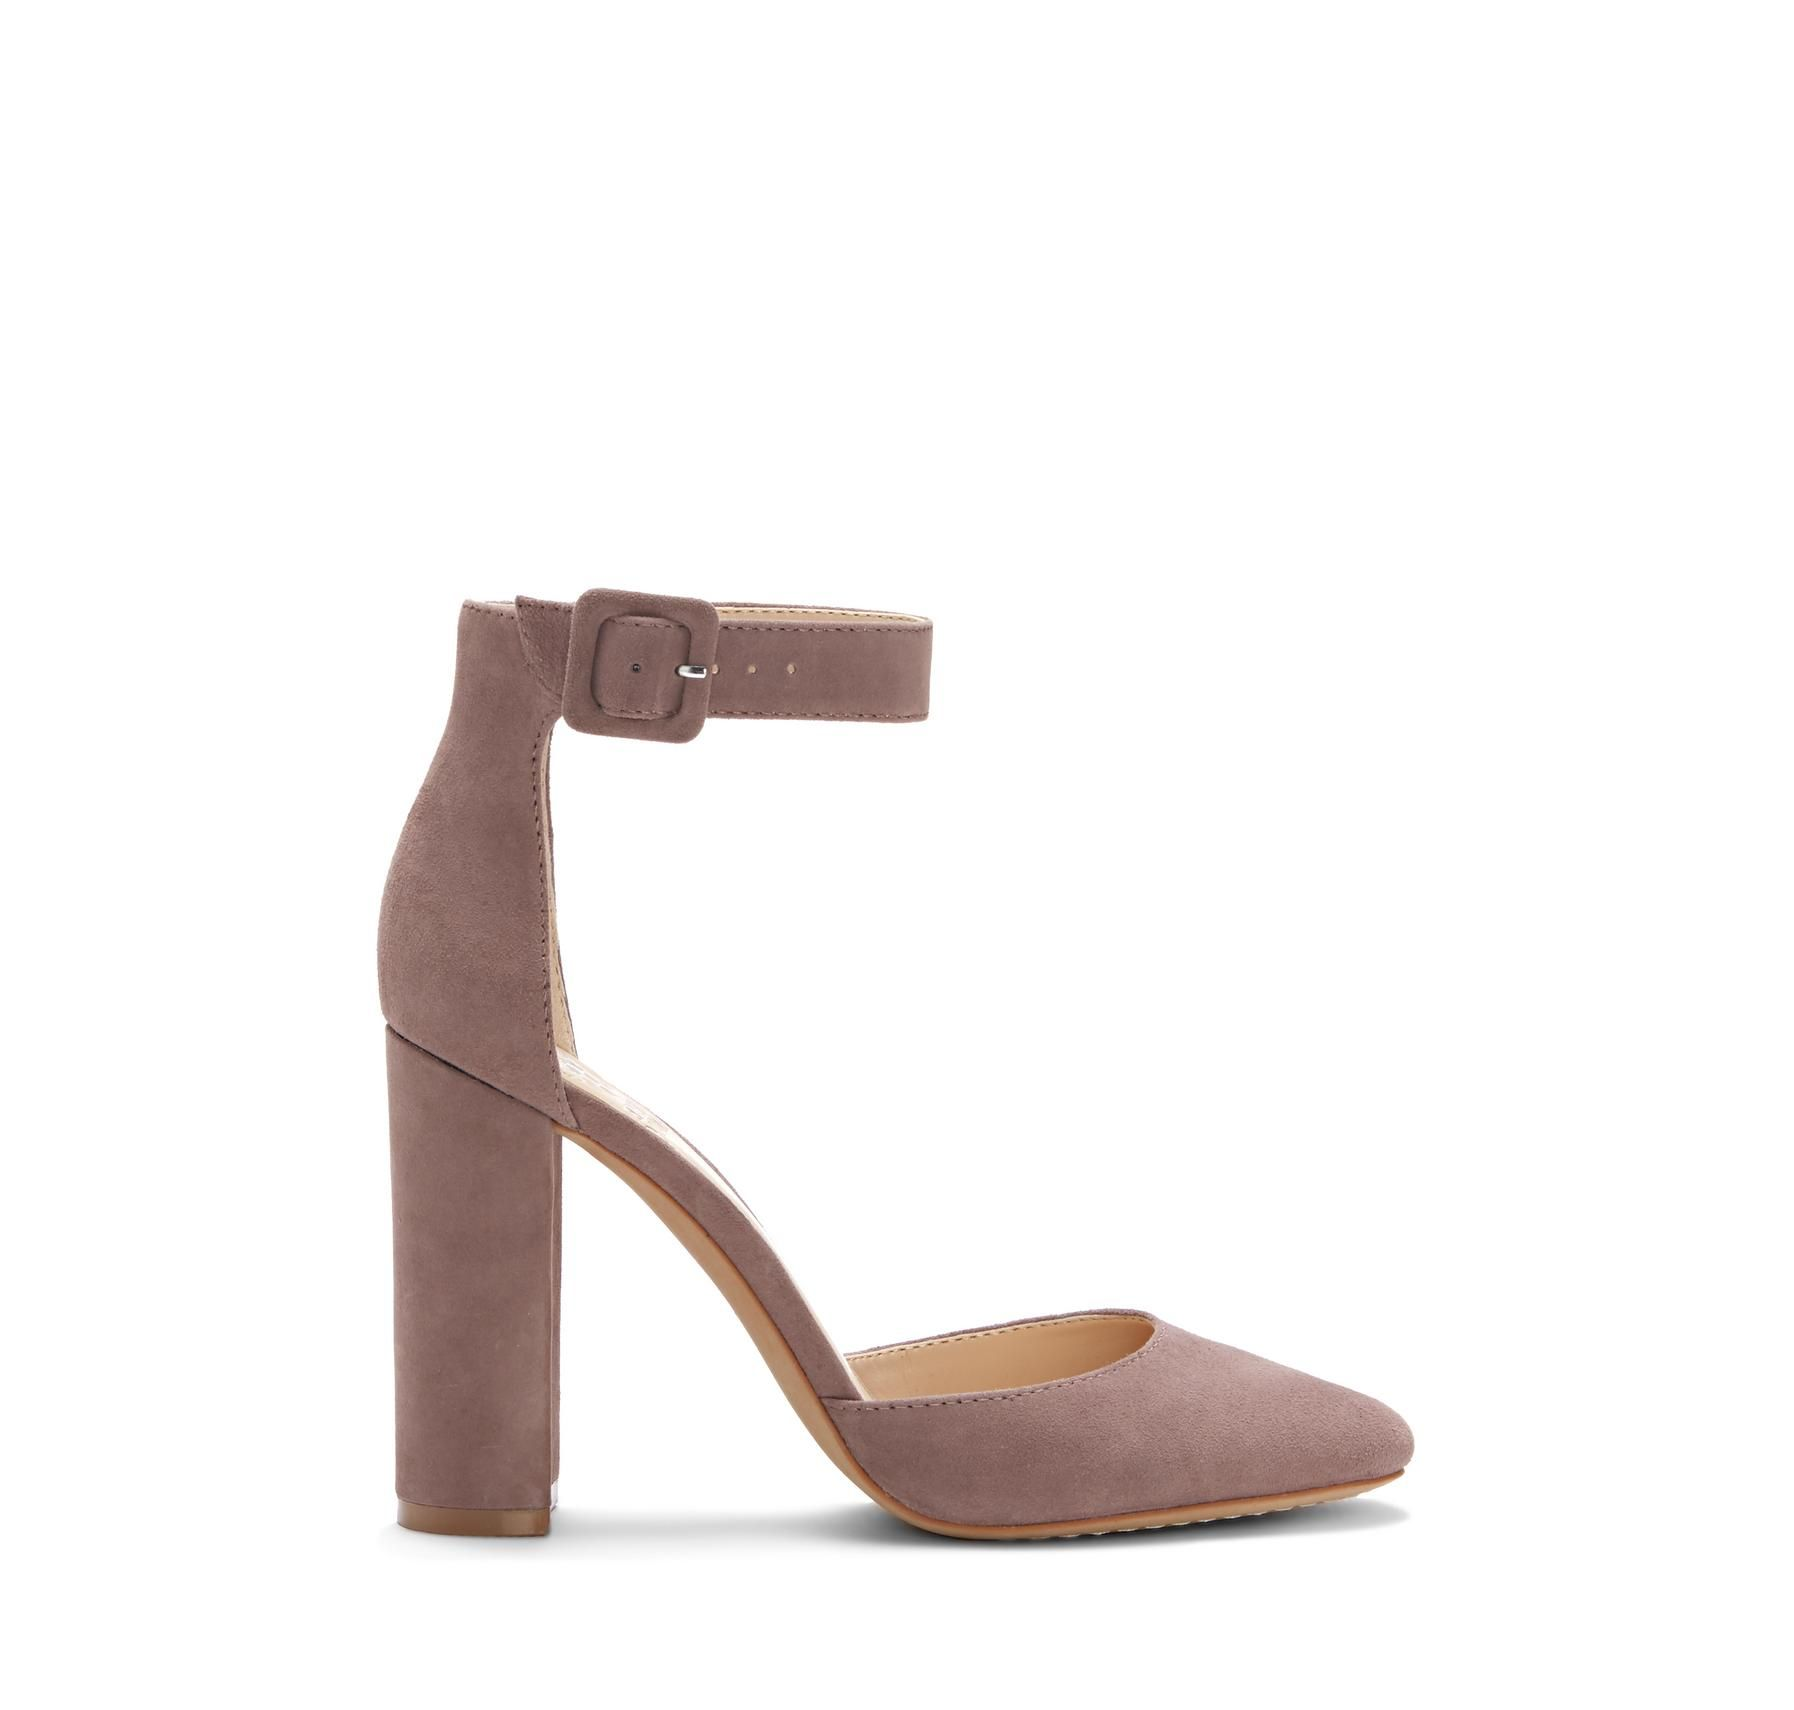 Vince Camuto Shaytel – Ankle-Strap Pump - Vince Camuto